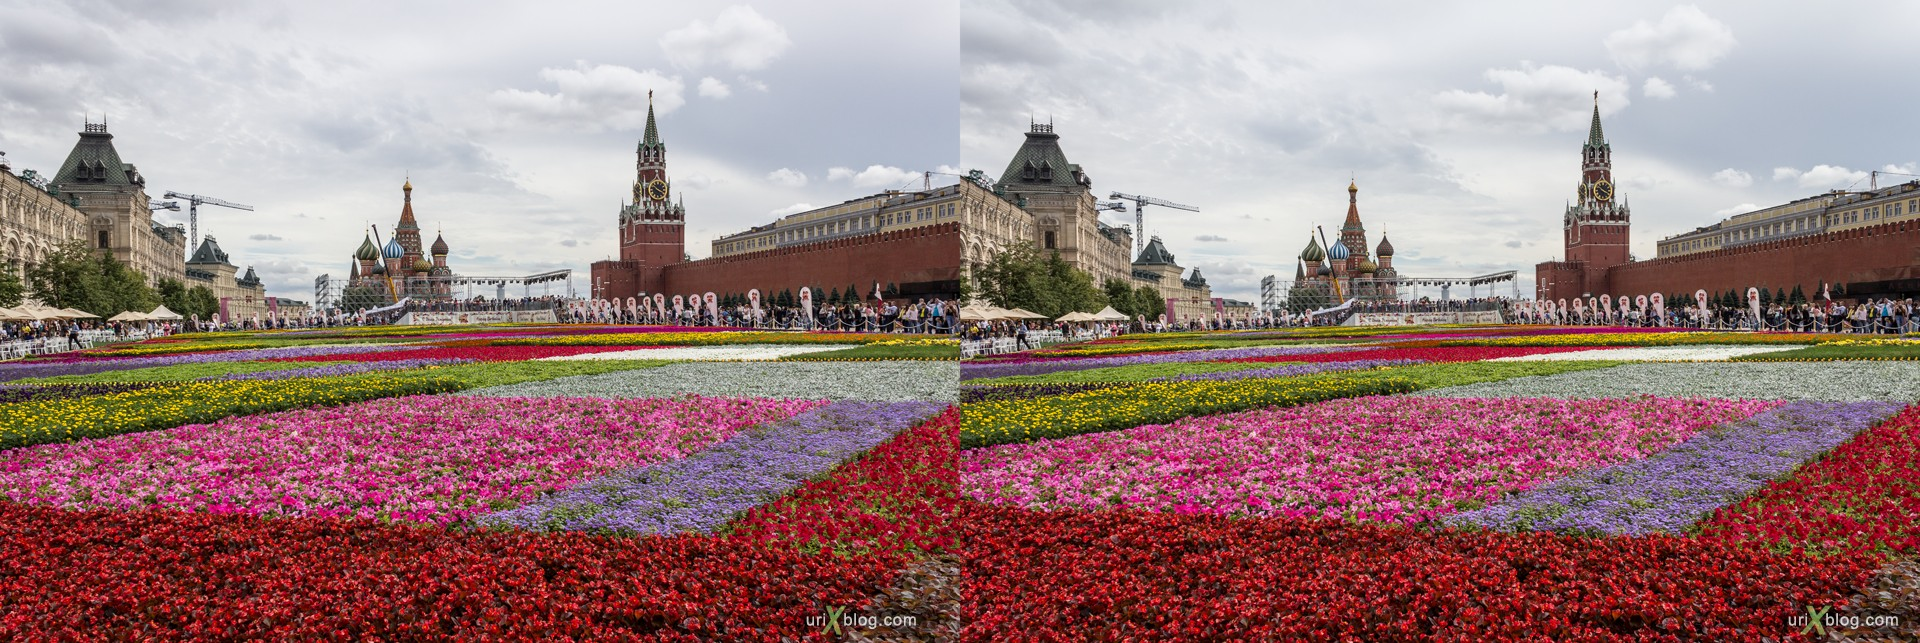 2013, Red Square, Moscow, Russia, Flowers, 3D, stereo pair, cross-eyed, crossview, cross view stereo pair, stereoscopic